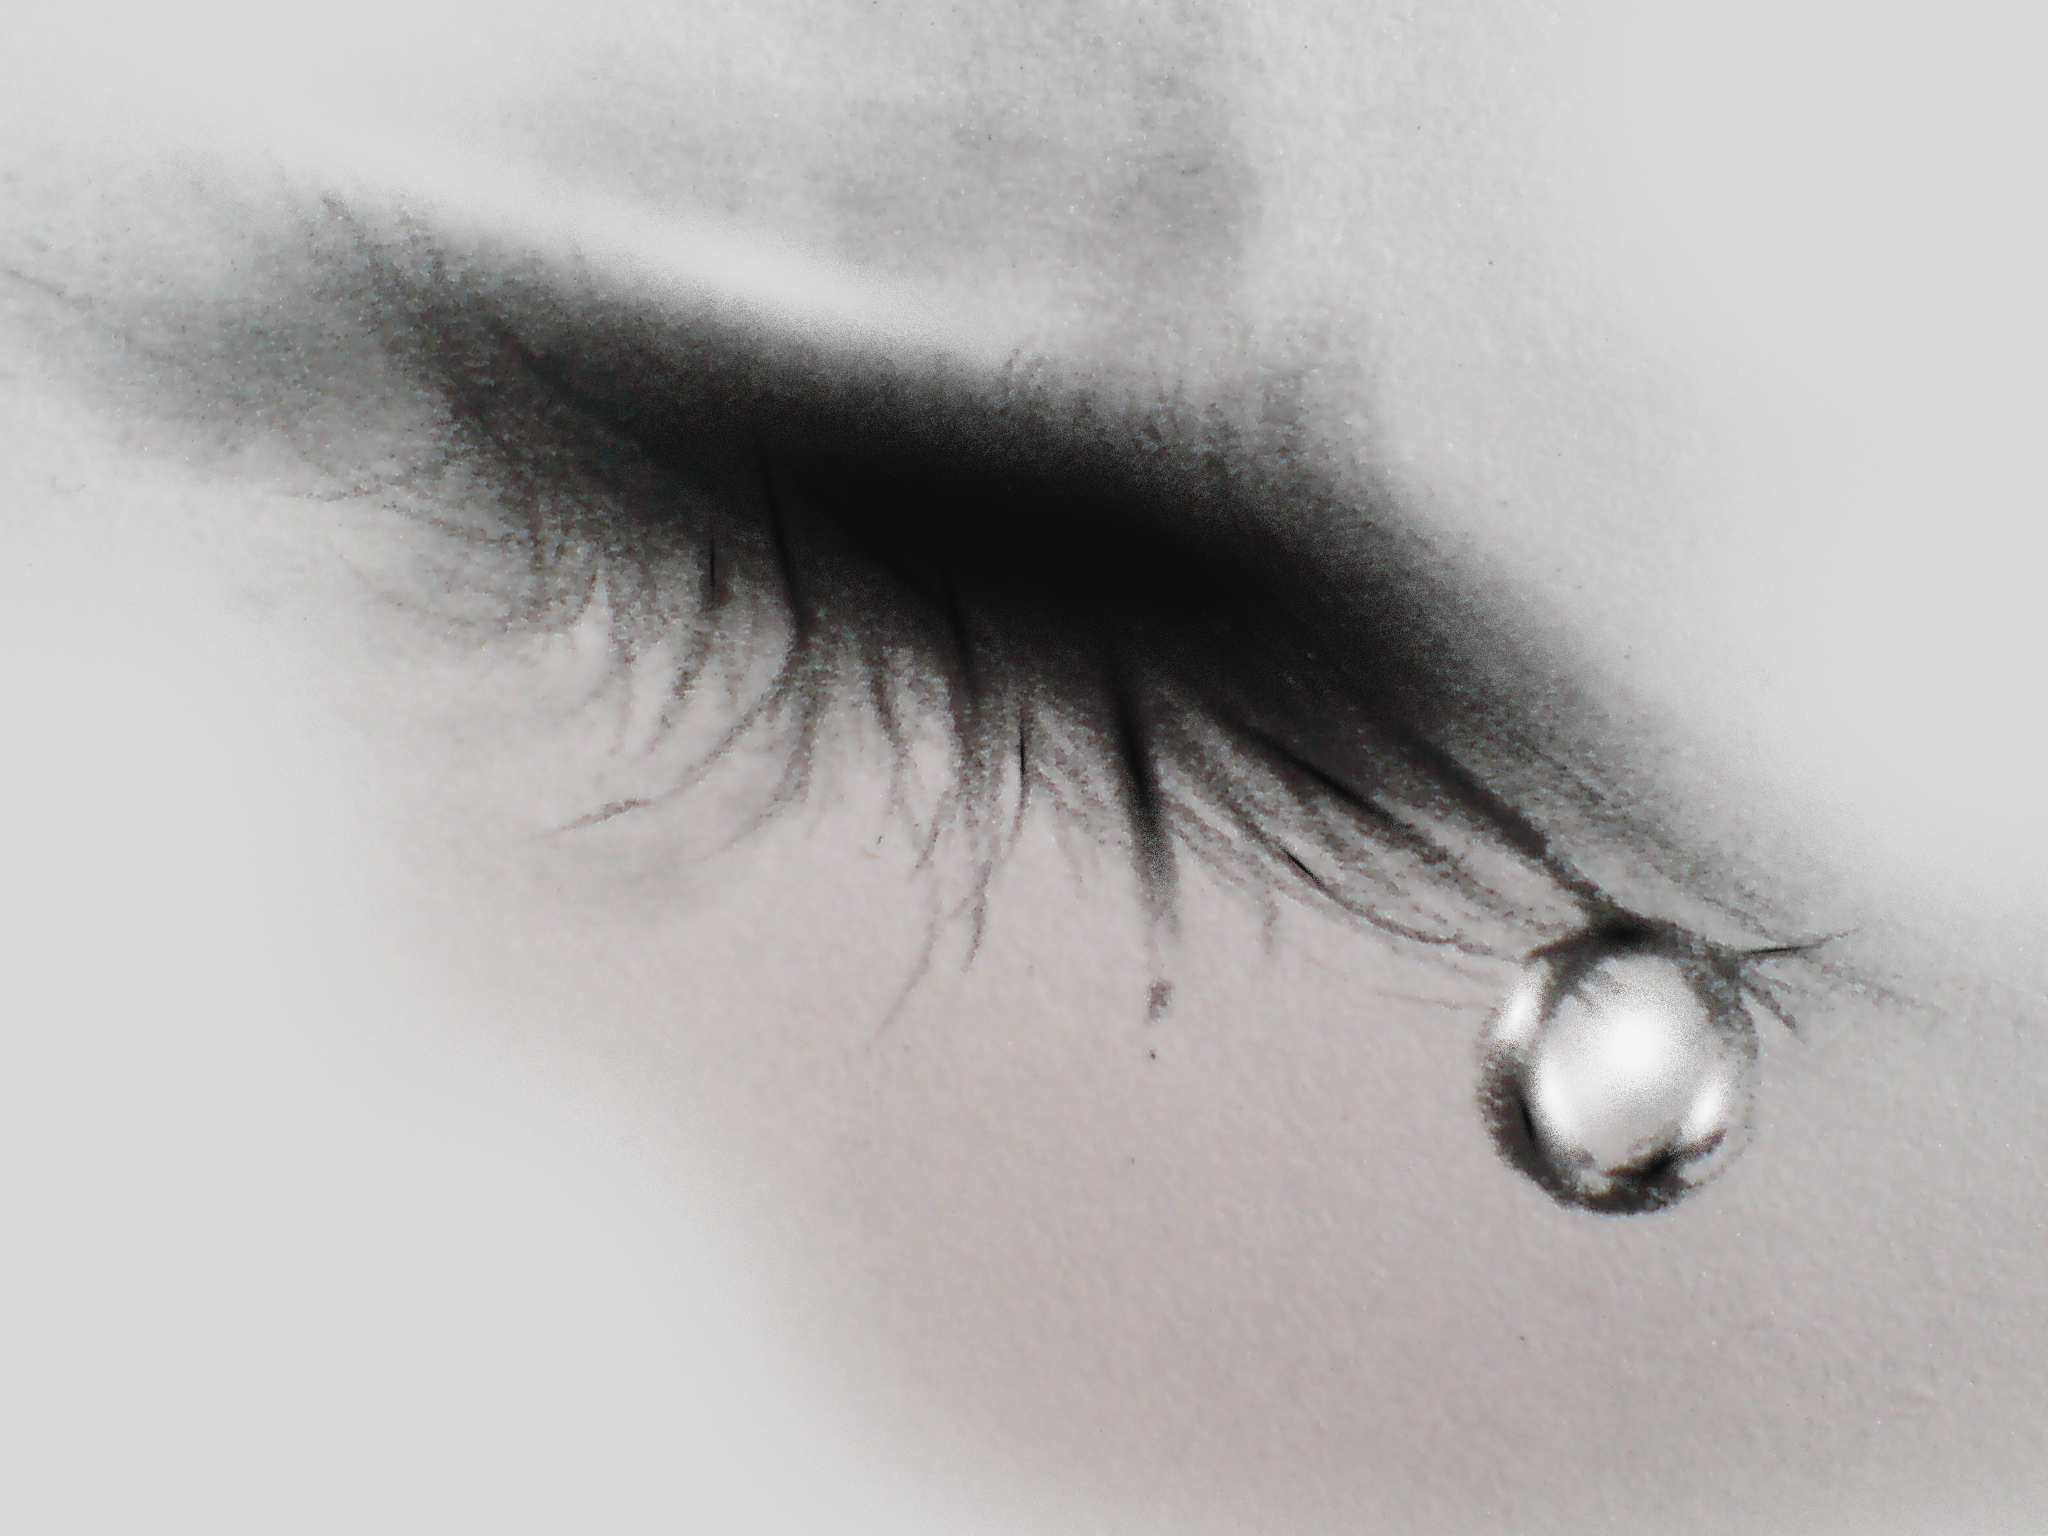 Crying eyes by shadagishvili on DeviantArt